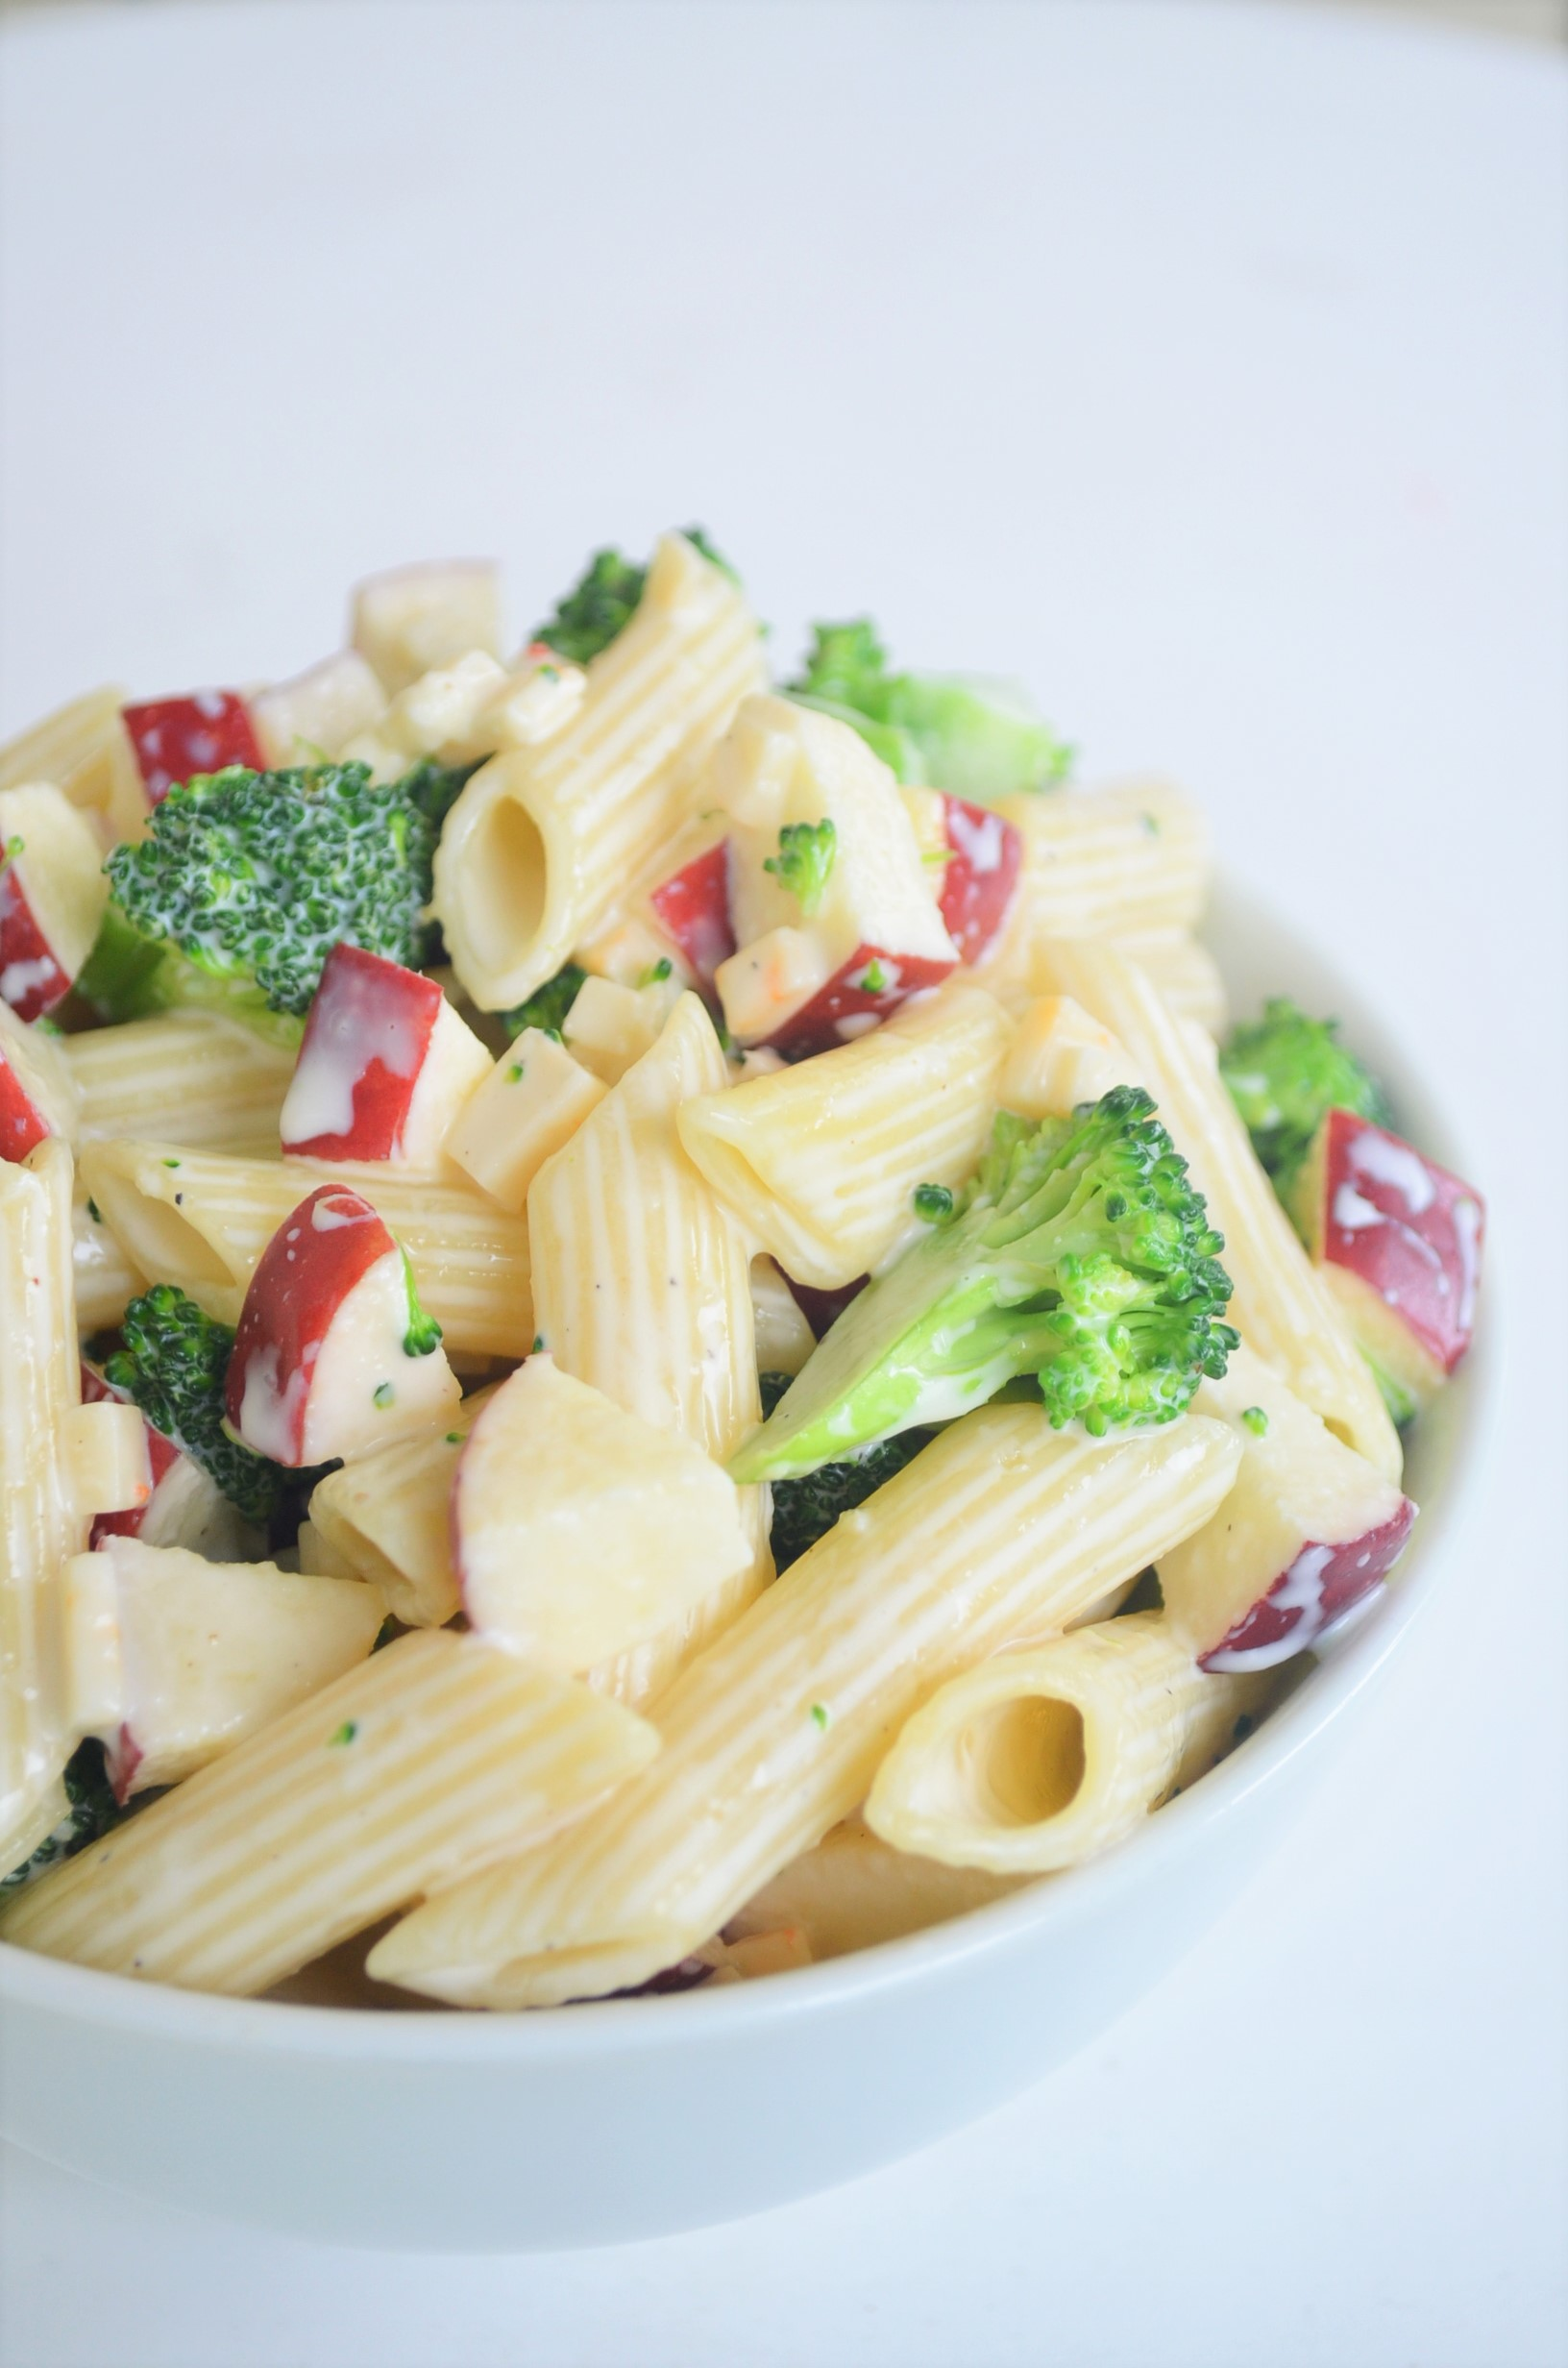 Apple and Broccoli Pasta Salad